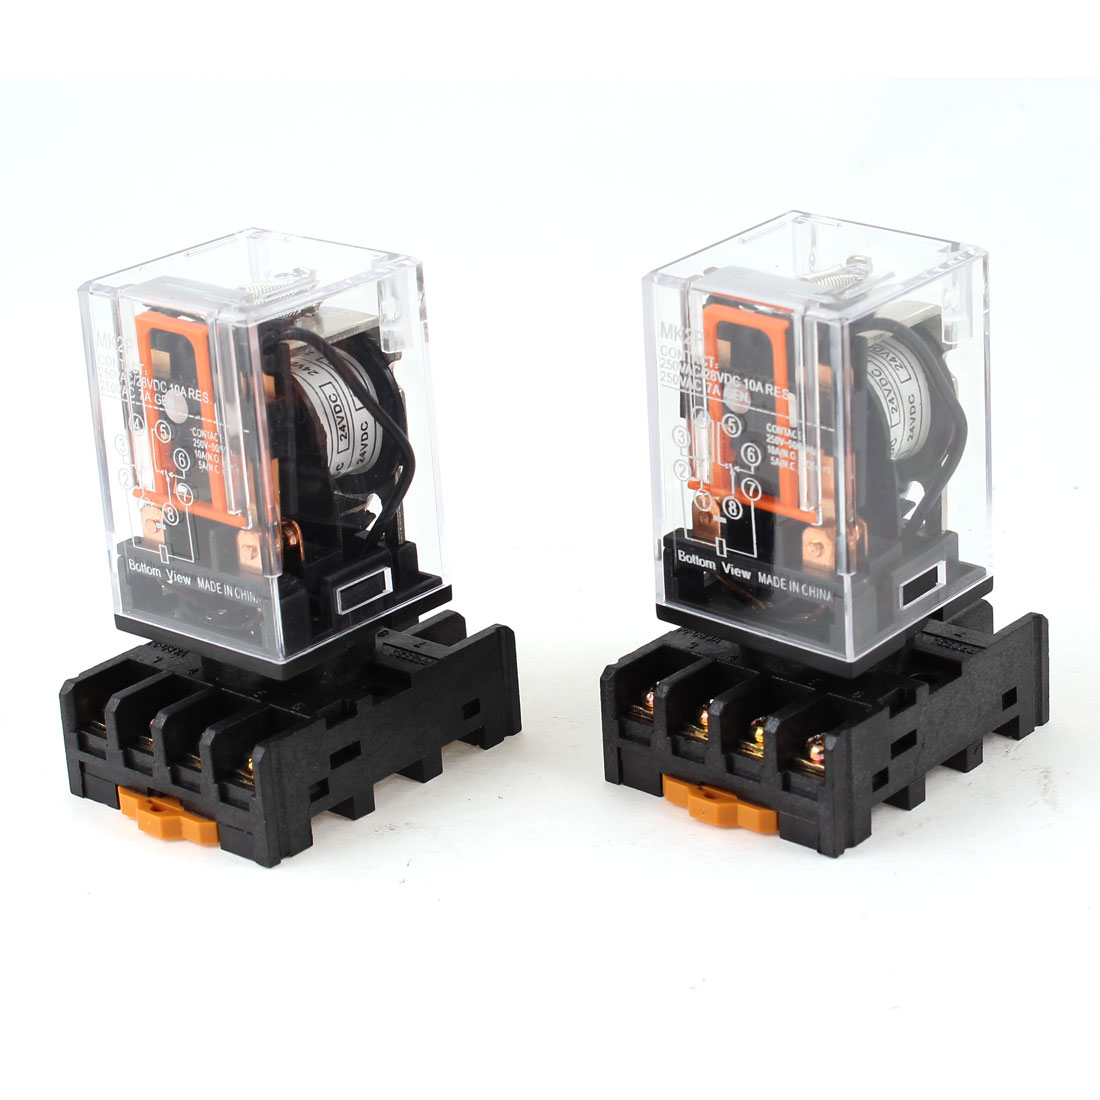 DC 24V Coil Voltage 8 Pin DPDT Electromagnetic Power Relay 2 Pcs with Base